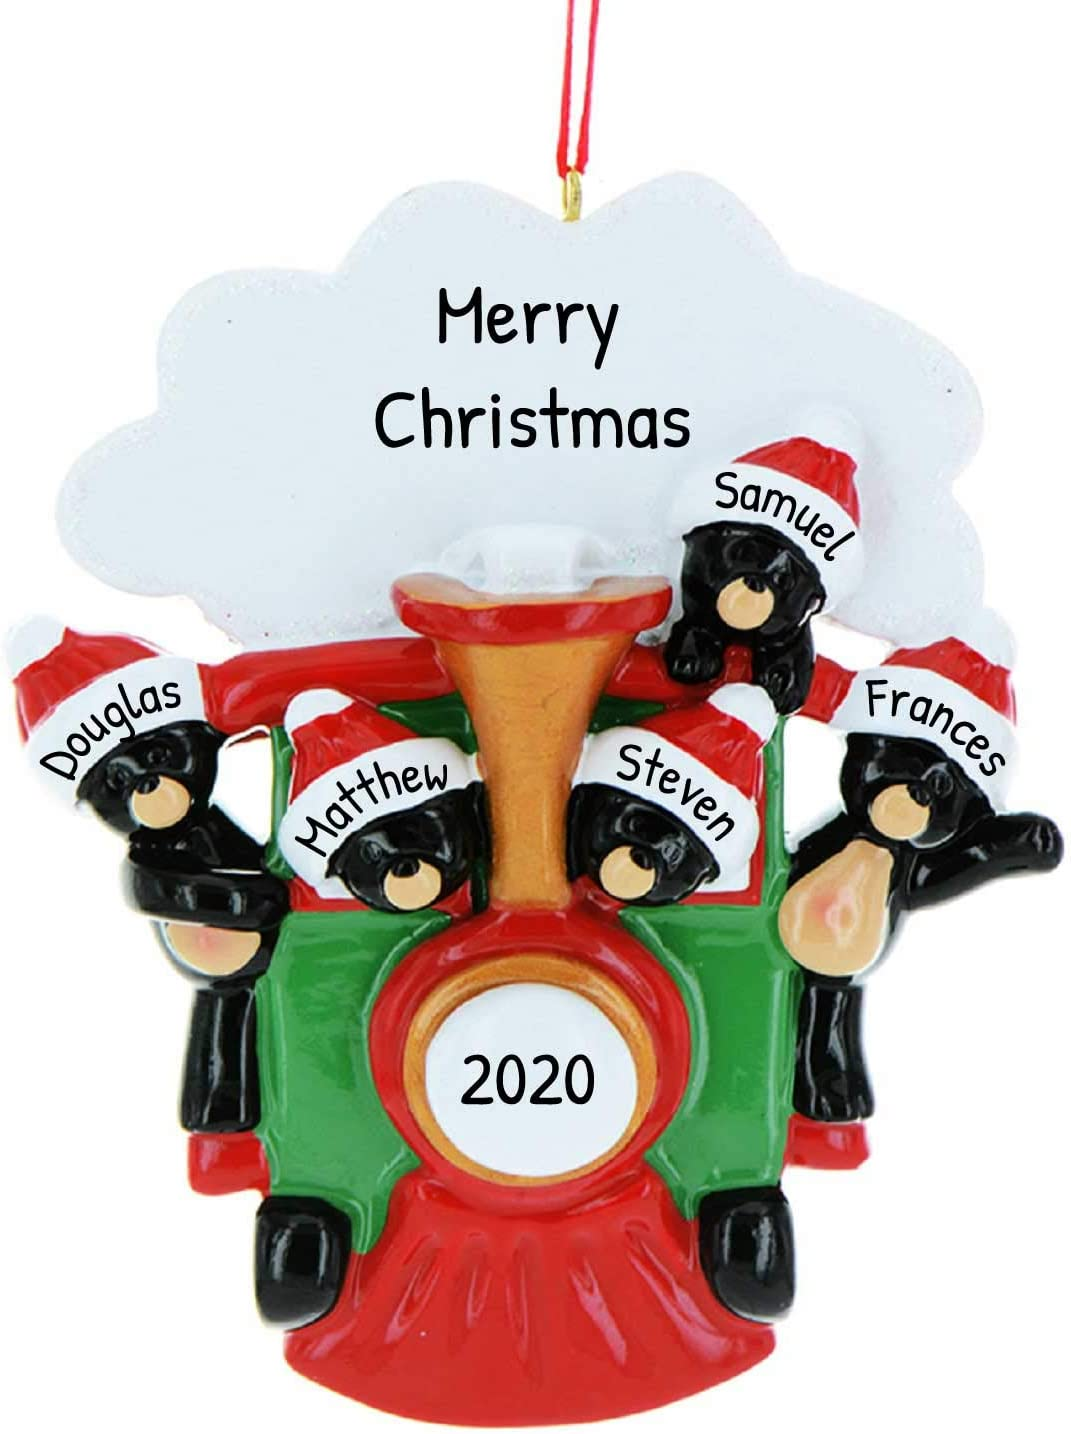 Volunteering At Christmas For Foster Children 2020 Amazon.com: Personalized All Aboard Family of 3 Christmas Tree